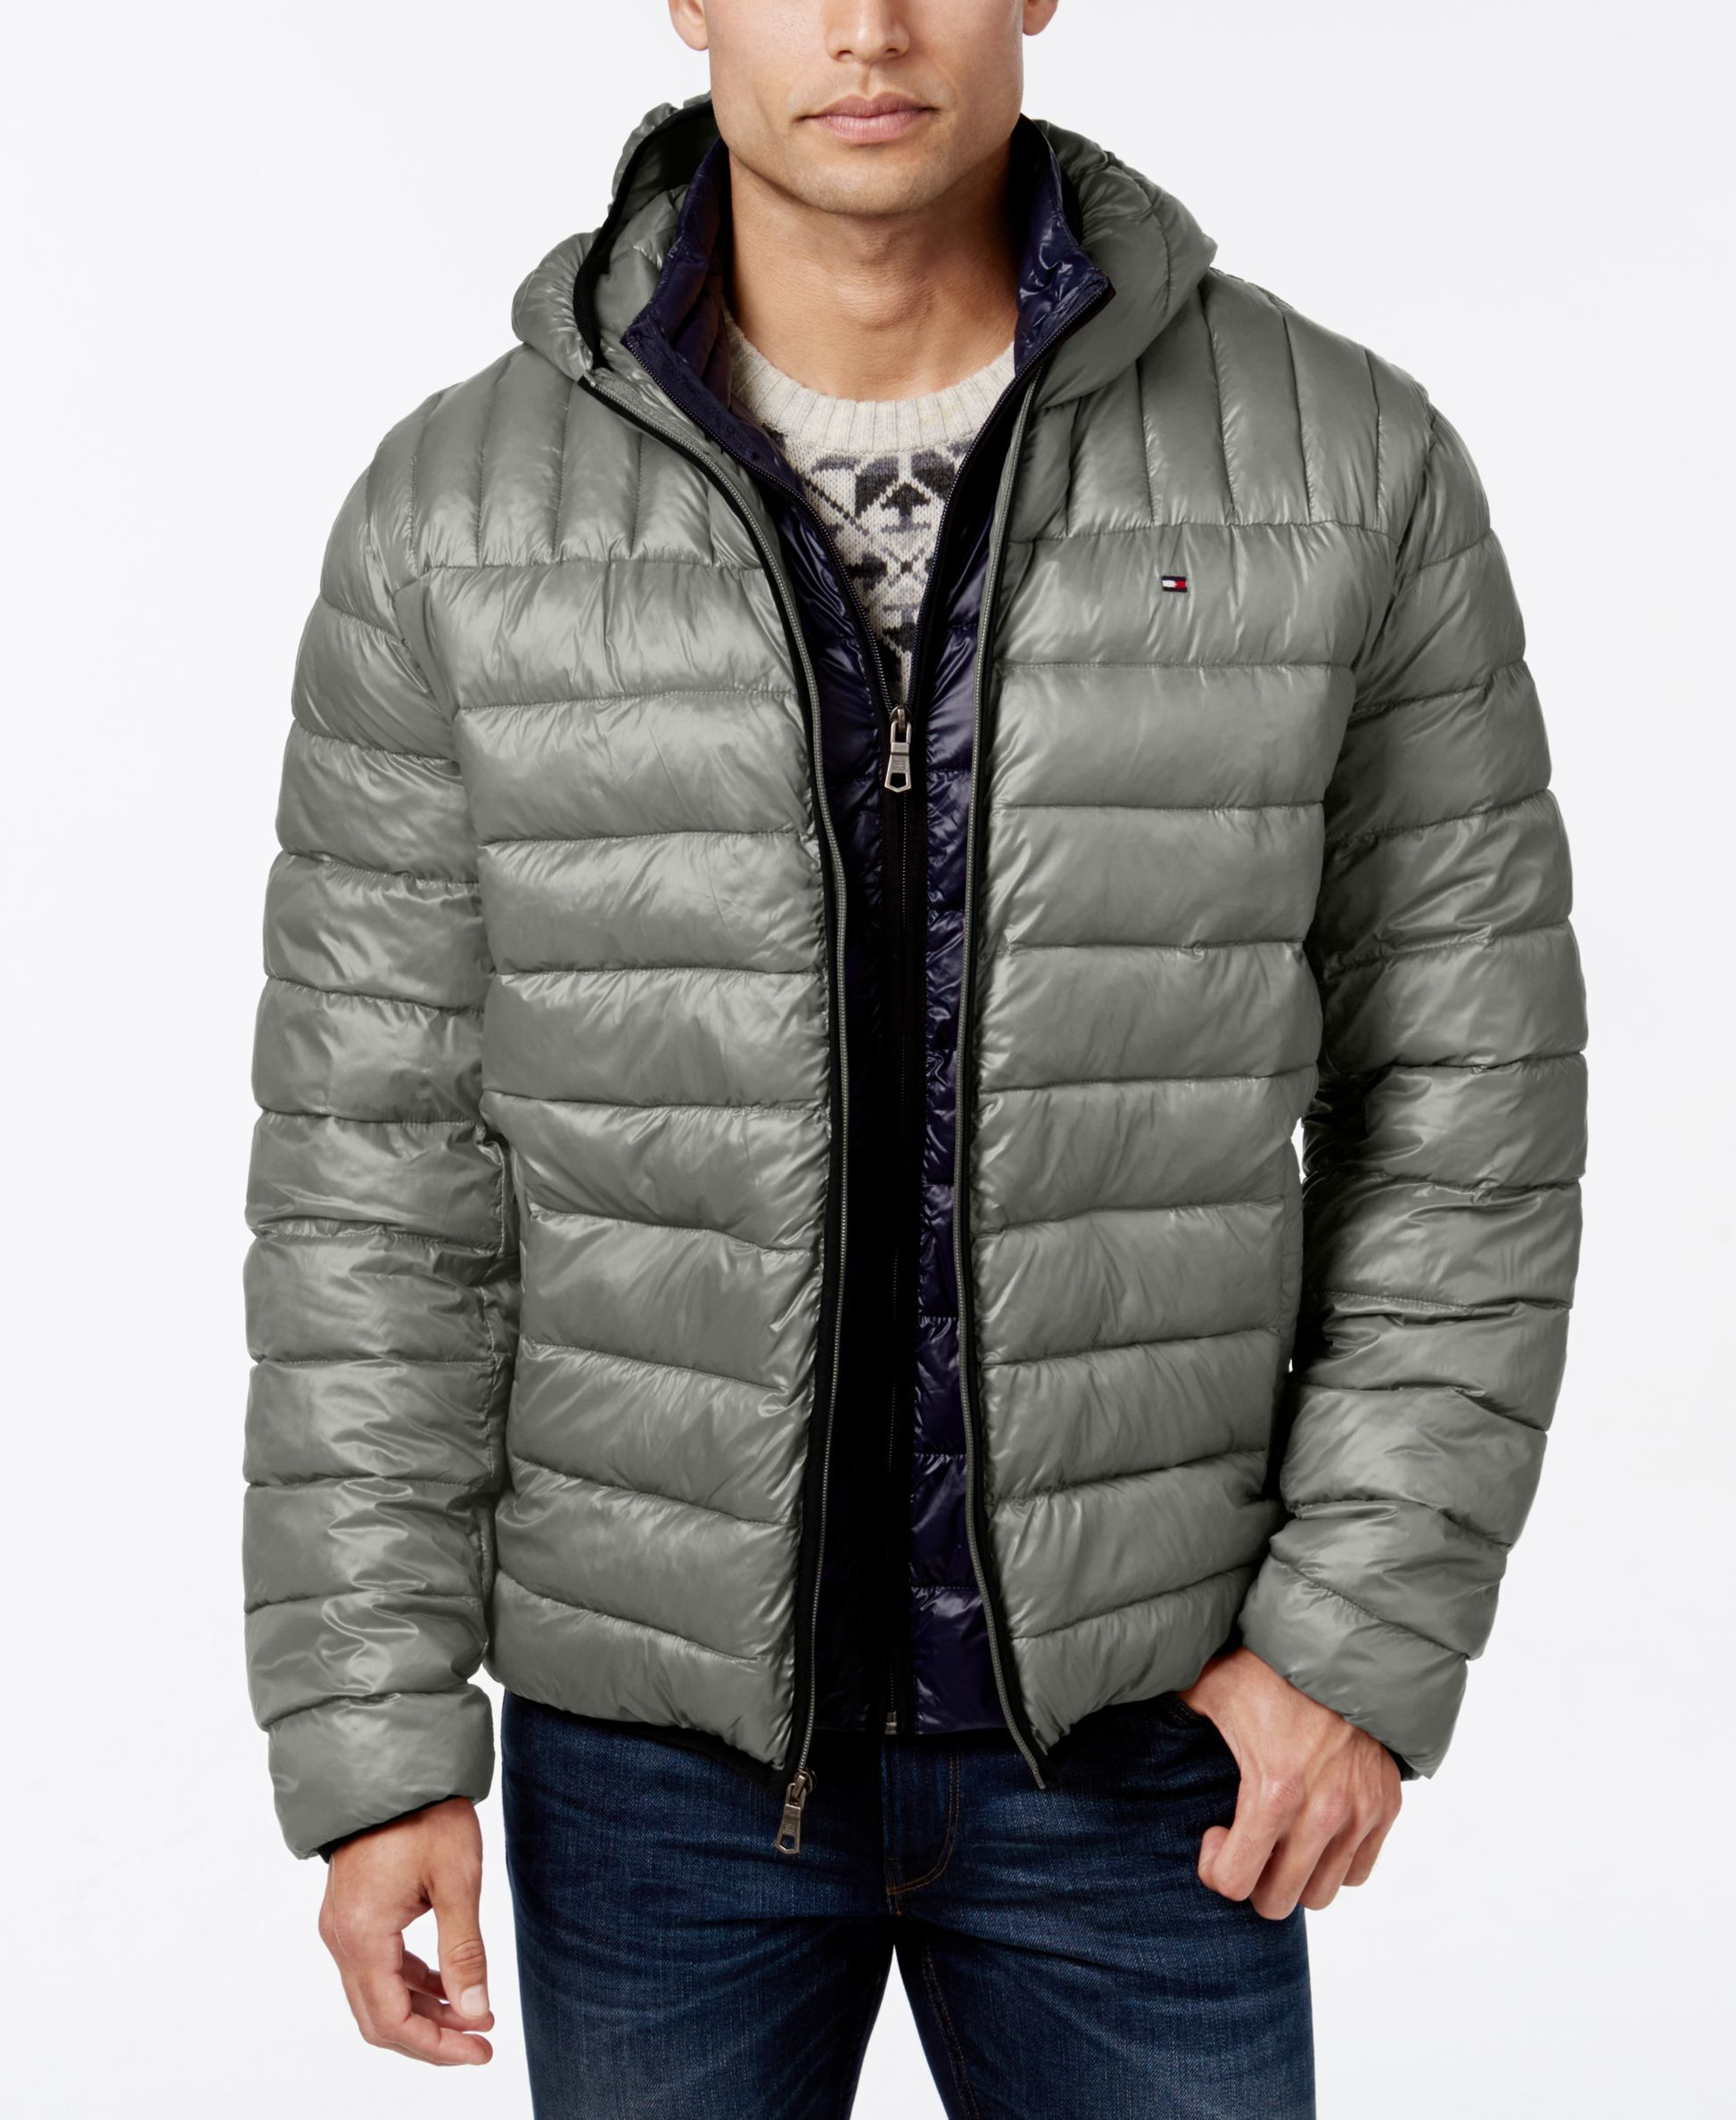 TOMMY HILFIGER TRANSITIONAL JACKETS tommy hilfiger hooded packable jacket YYDMQQS